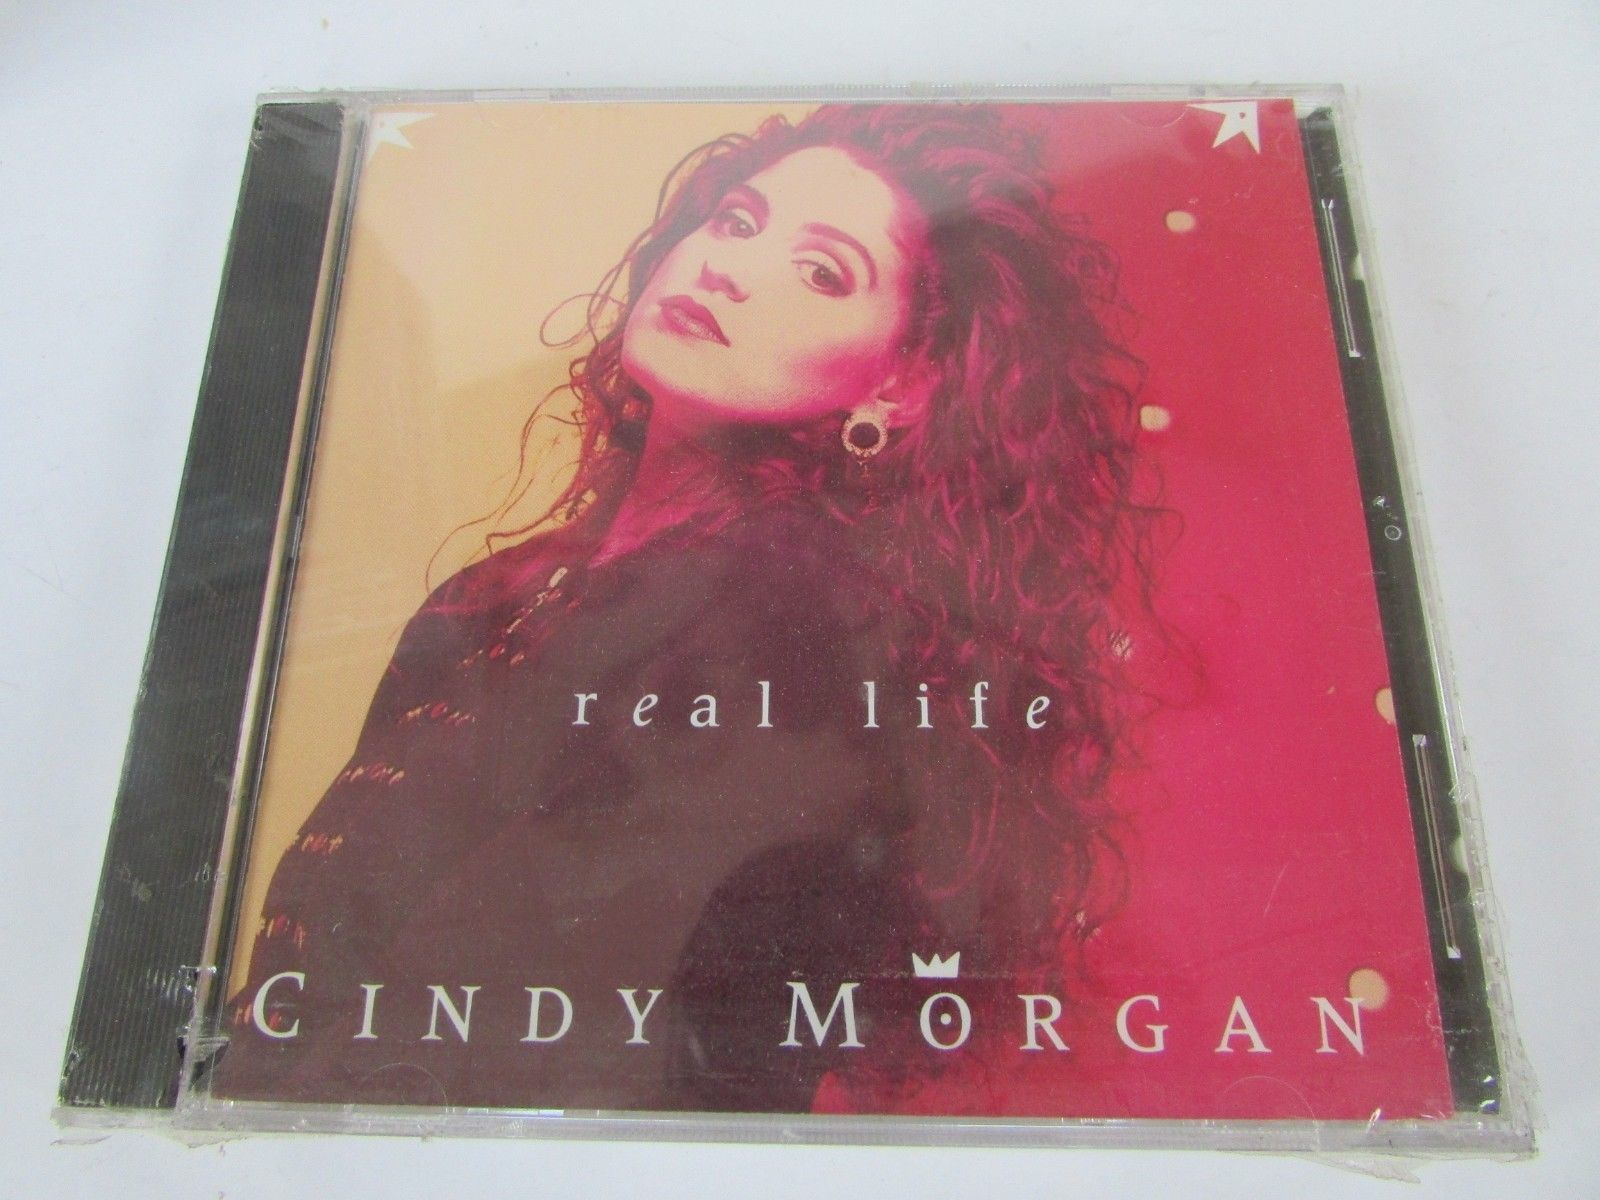 Primary image for Real Life by Cindy Morgan (CD, Jun-1992, Word/Epic) SEALED NEW